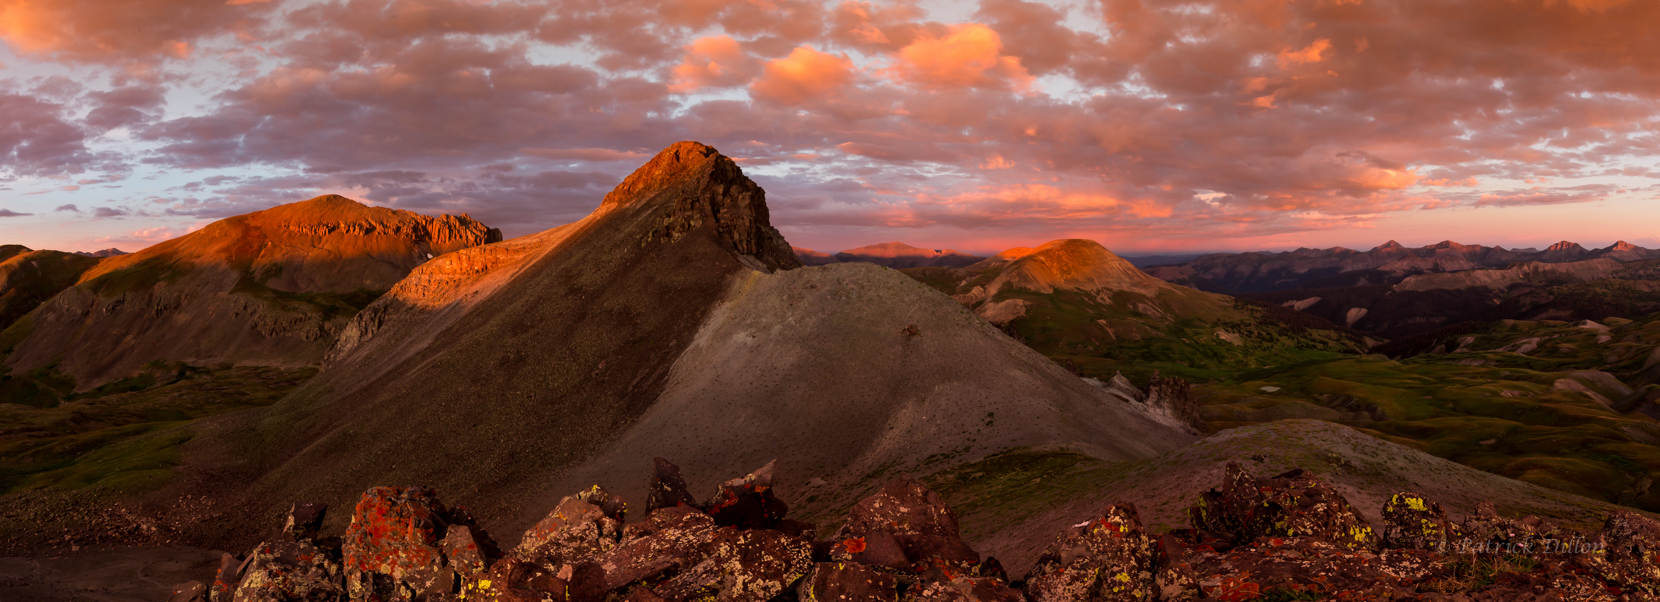 san_juan_mountain_sunset__sunset_